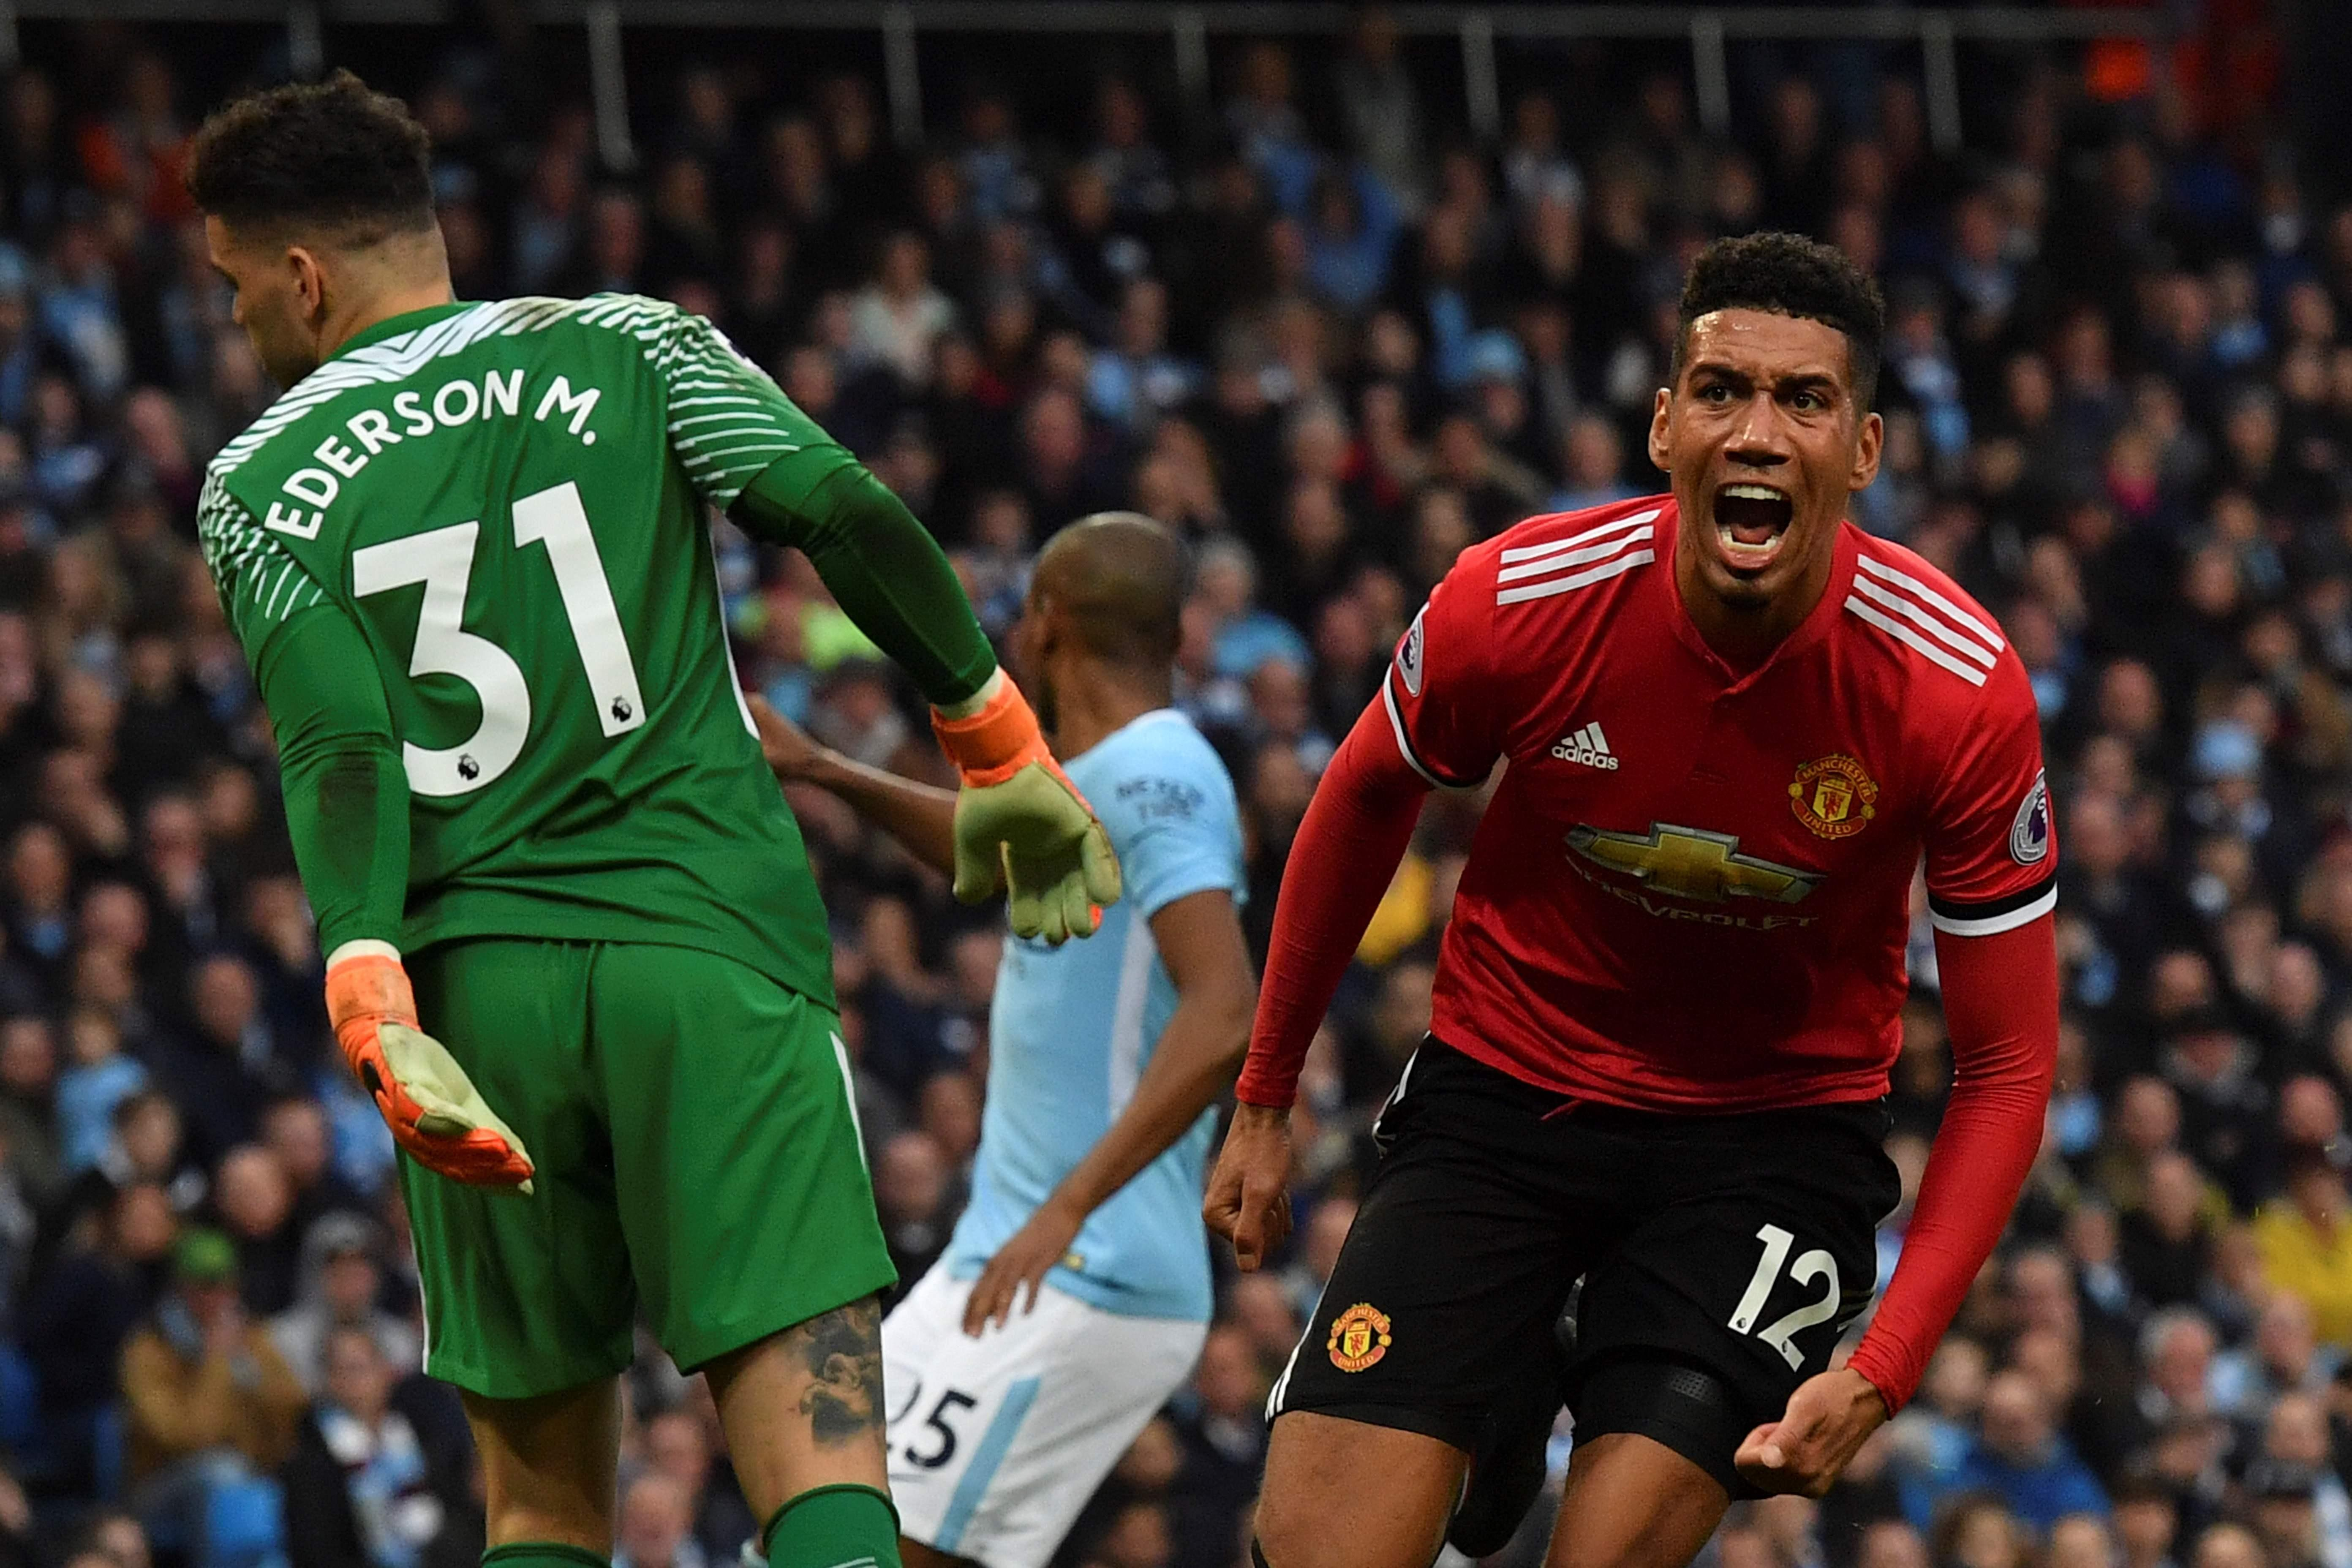 Smalling completed the turnaround